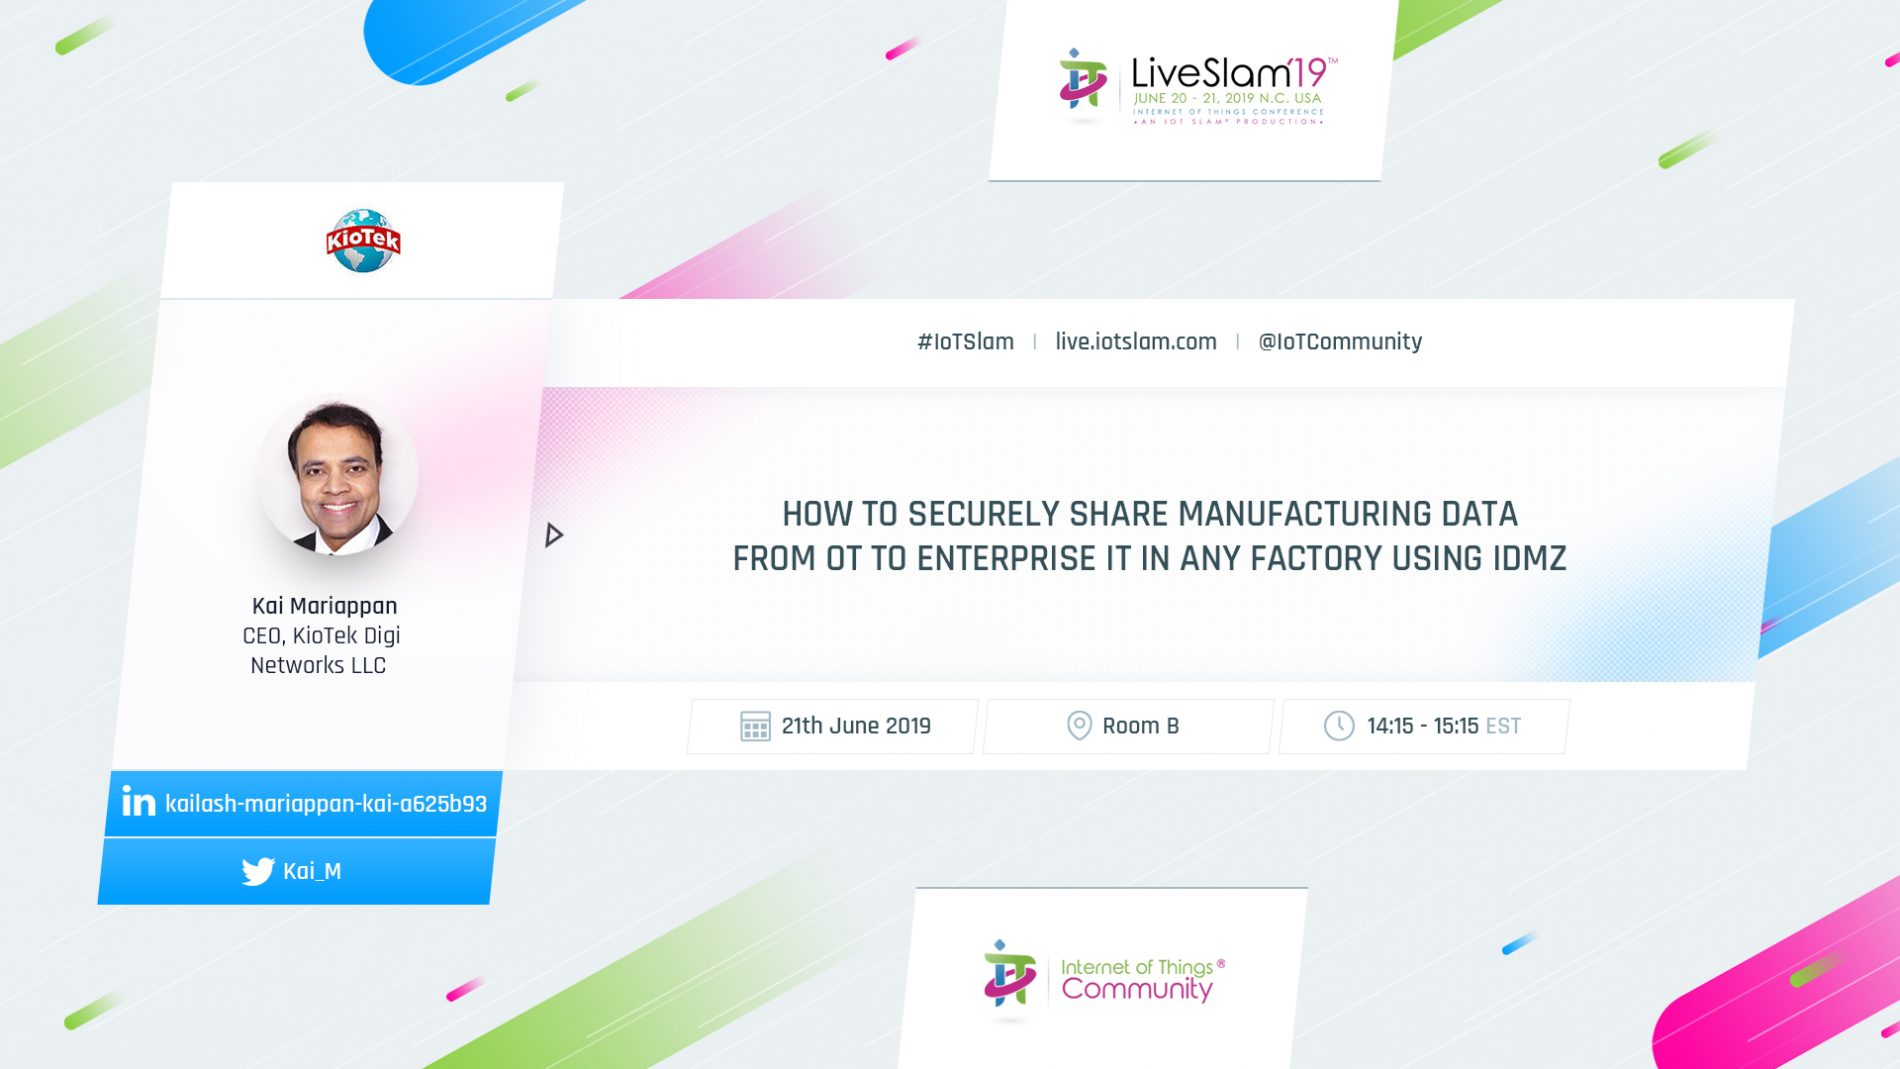 How to securely share manufacturing data from OT to enterprise IT in any factory using IDMZ